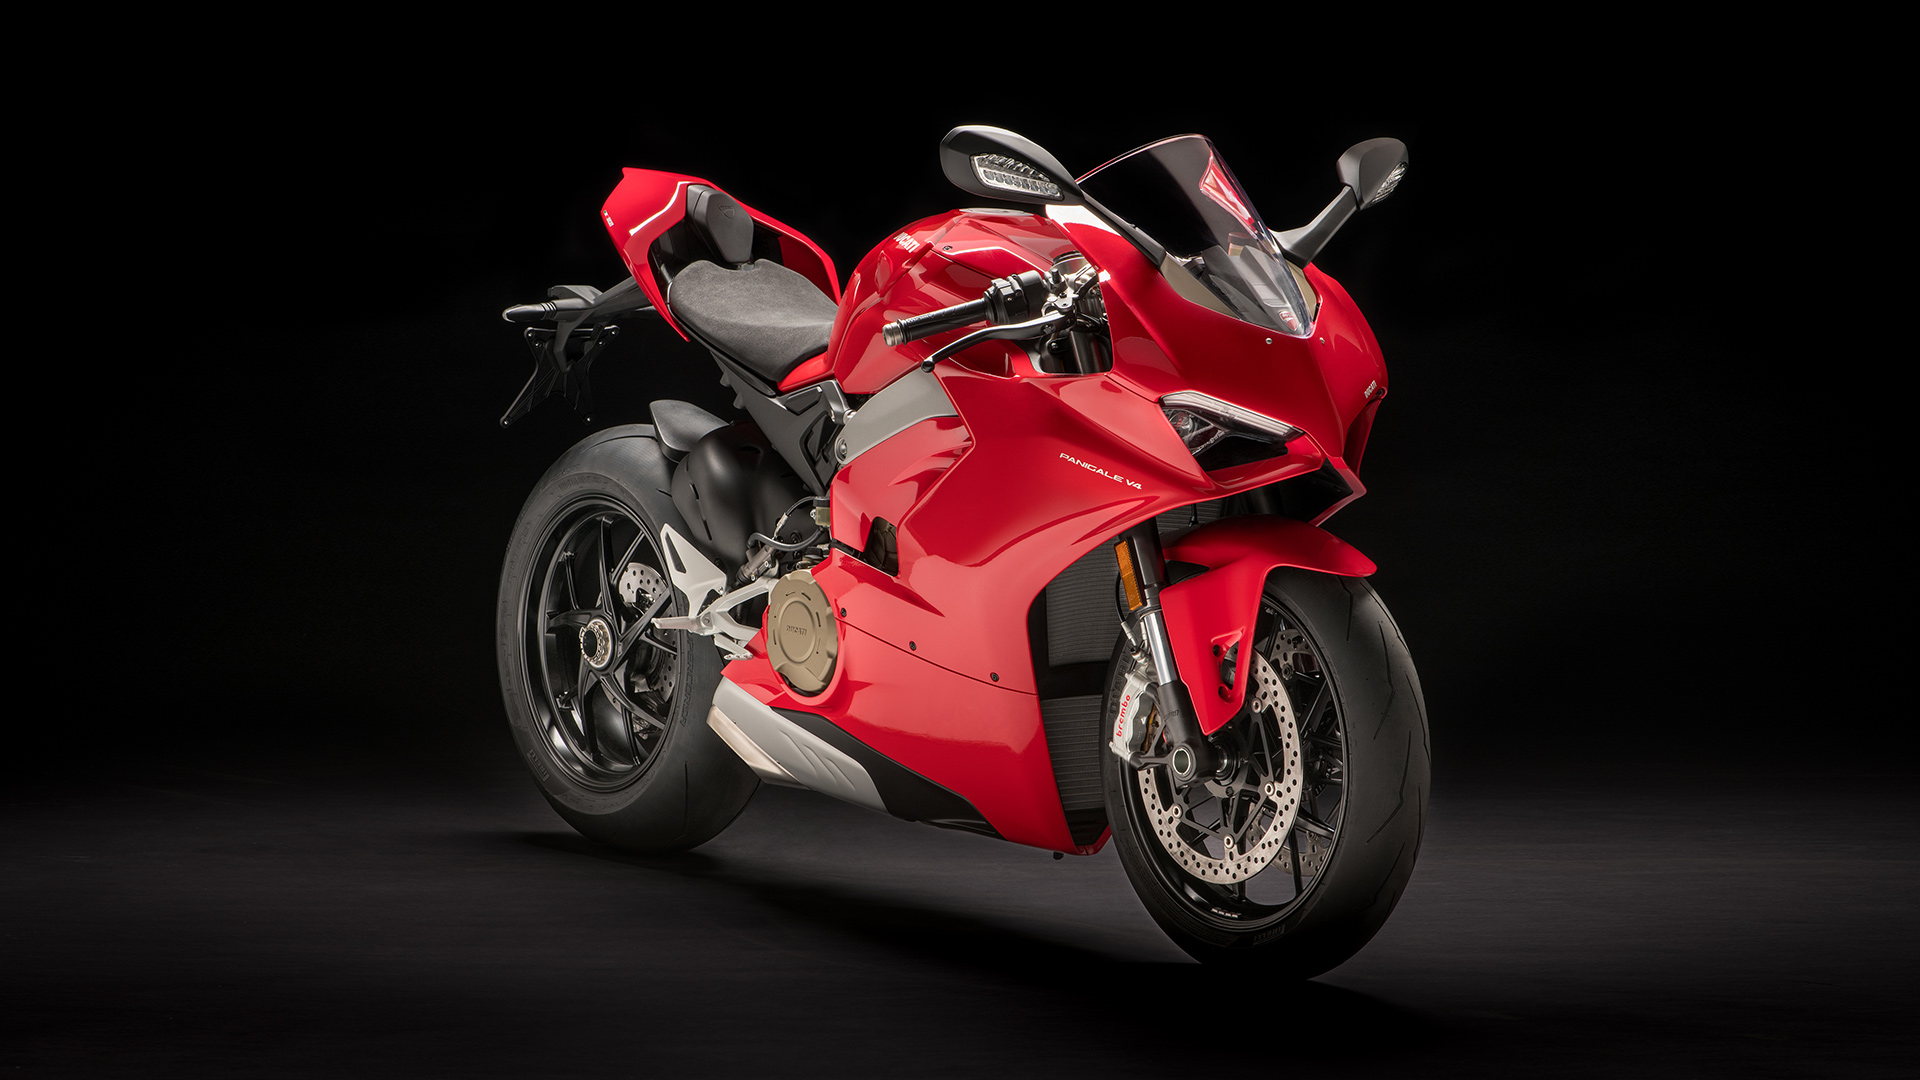 Ducati Panigale V4 Red Color